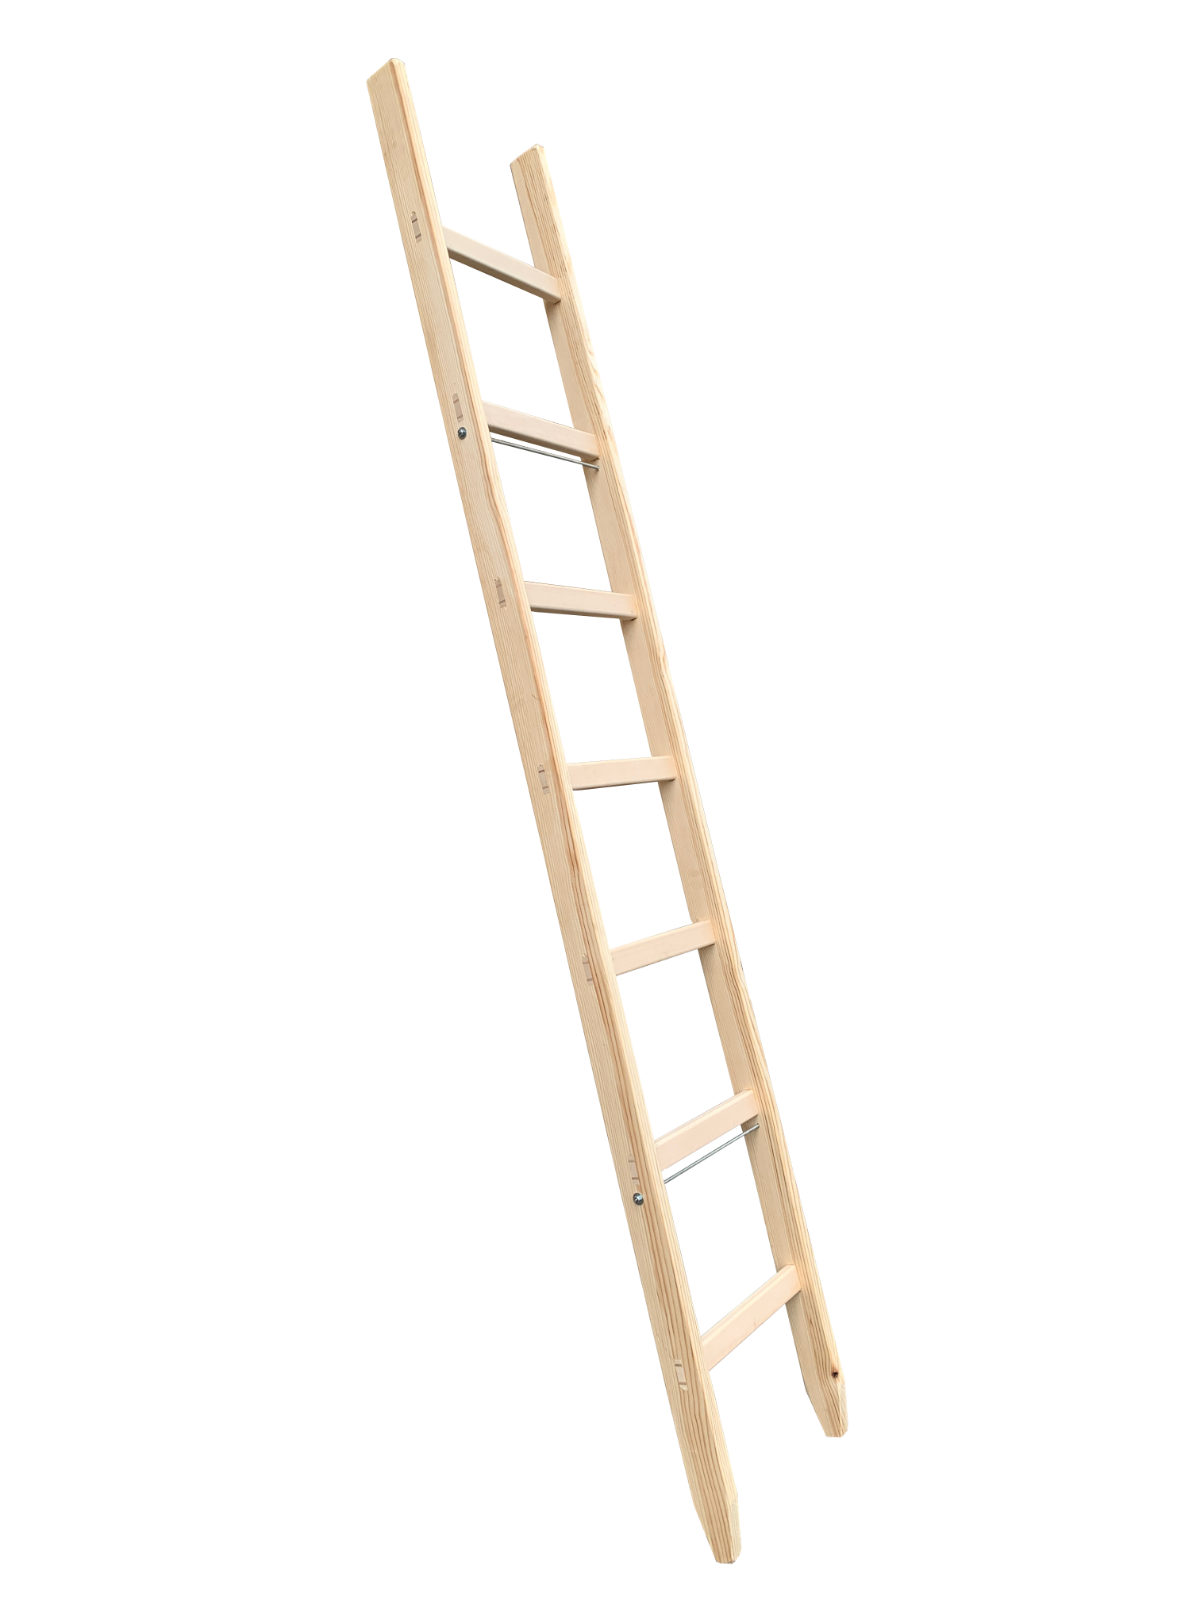 Details about New Traditional Single Wooden Ladder Vintage DIY & Decoration  Display Ladders